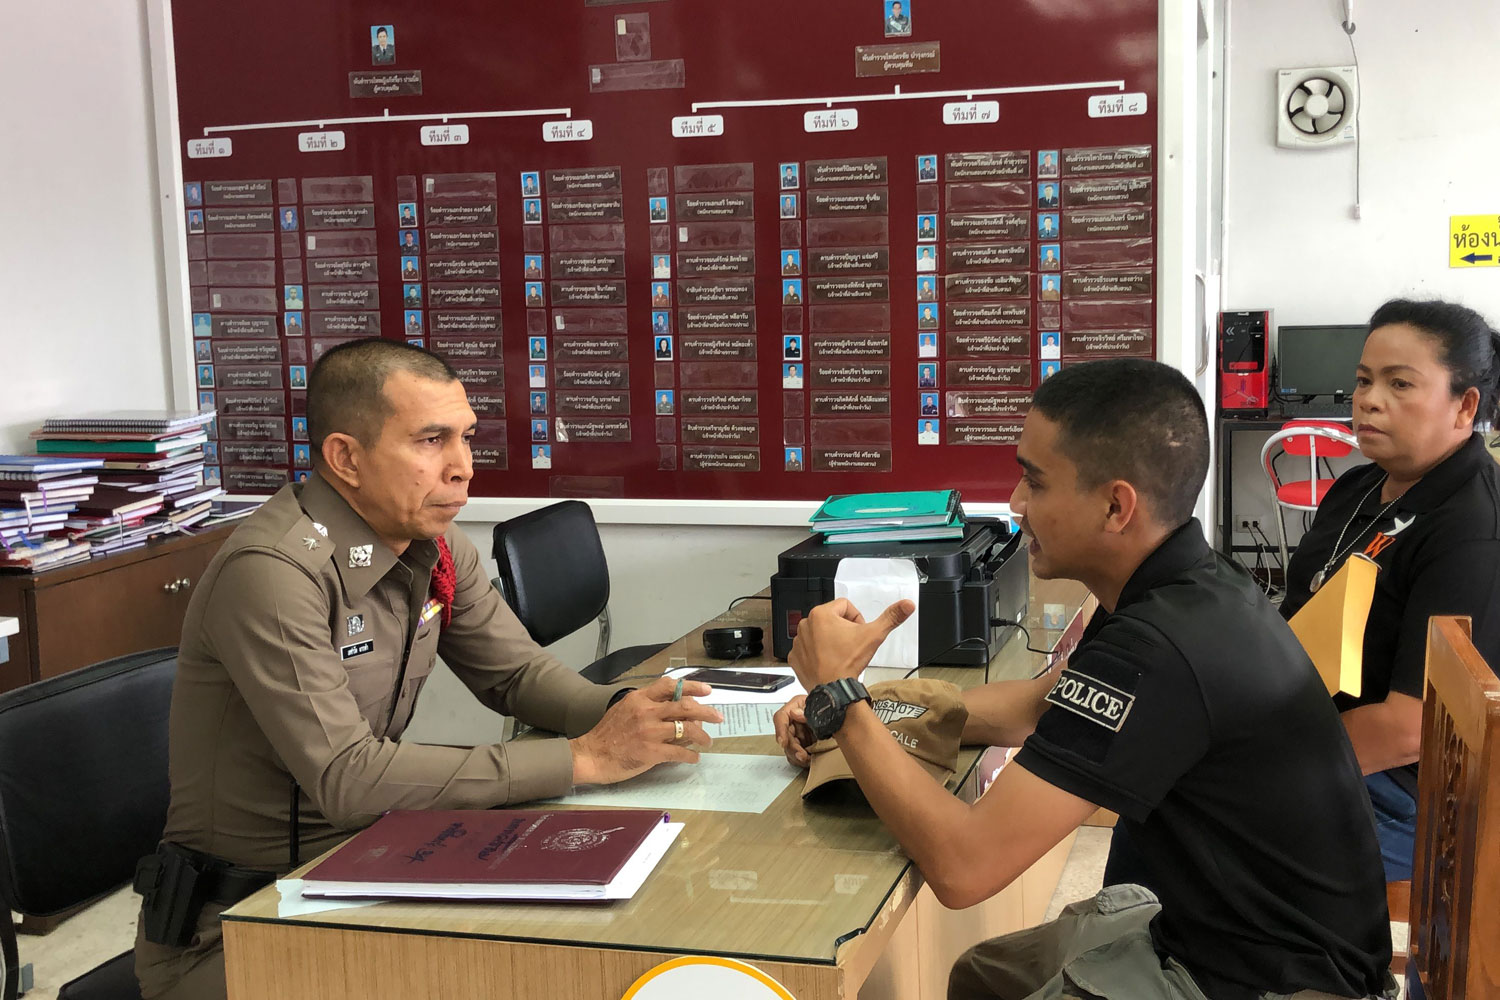 Pol Cpl Sanyalak Jandam of the Kapho police station in Pattani province (right) tells his story to Pol Capt Dechawat Makkham at the Hat Yai police station in Hat Yai district of Songkhla on Saturday. (Photo by Assawin Pakkawan)